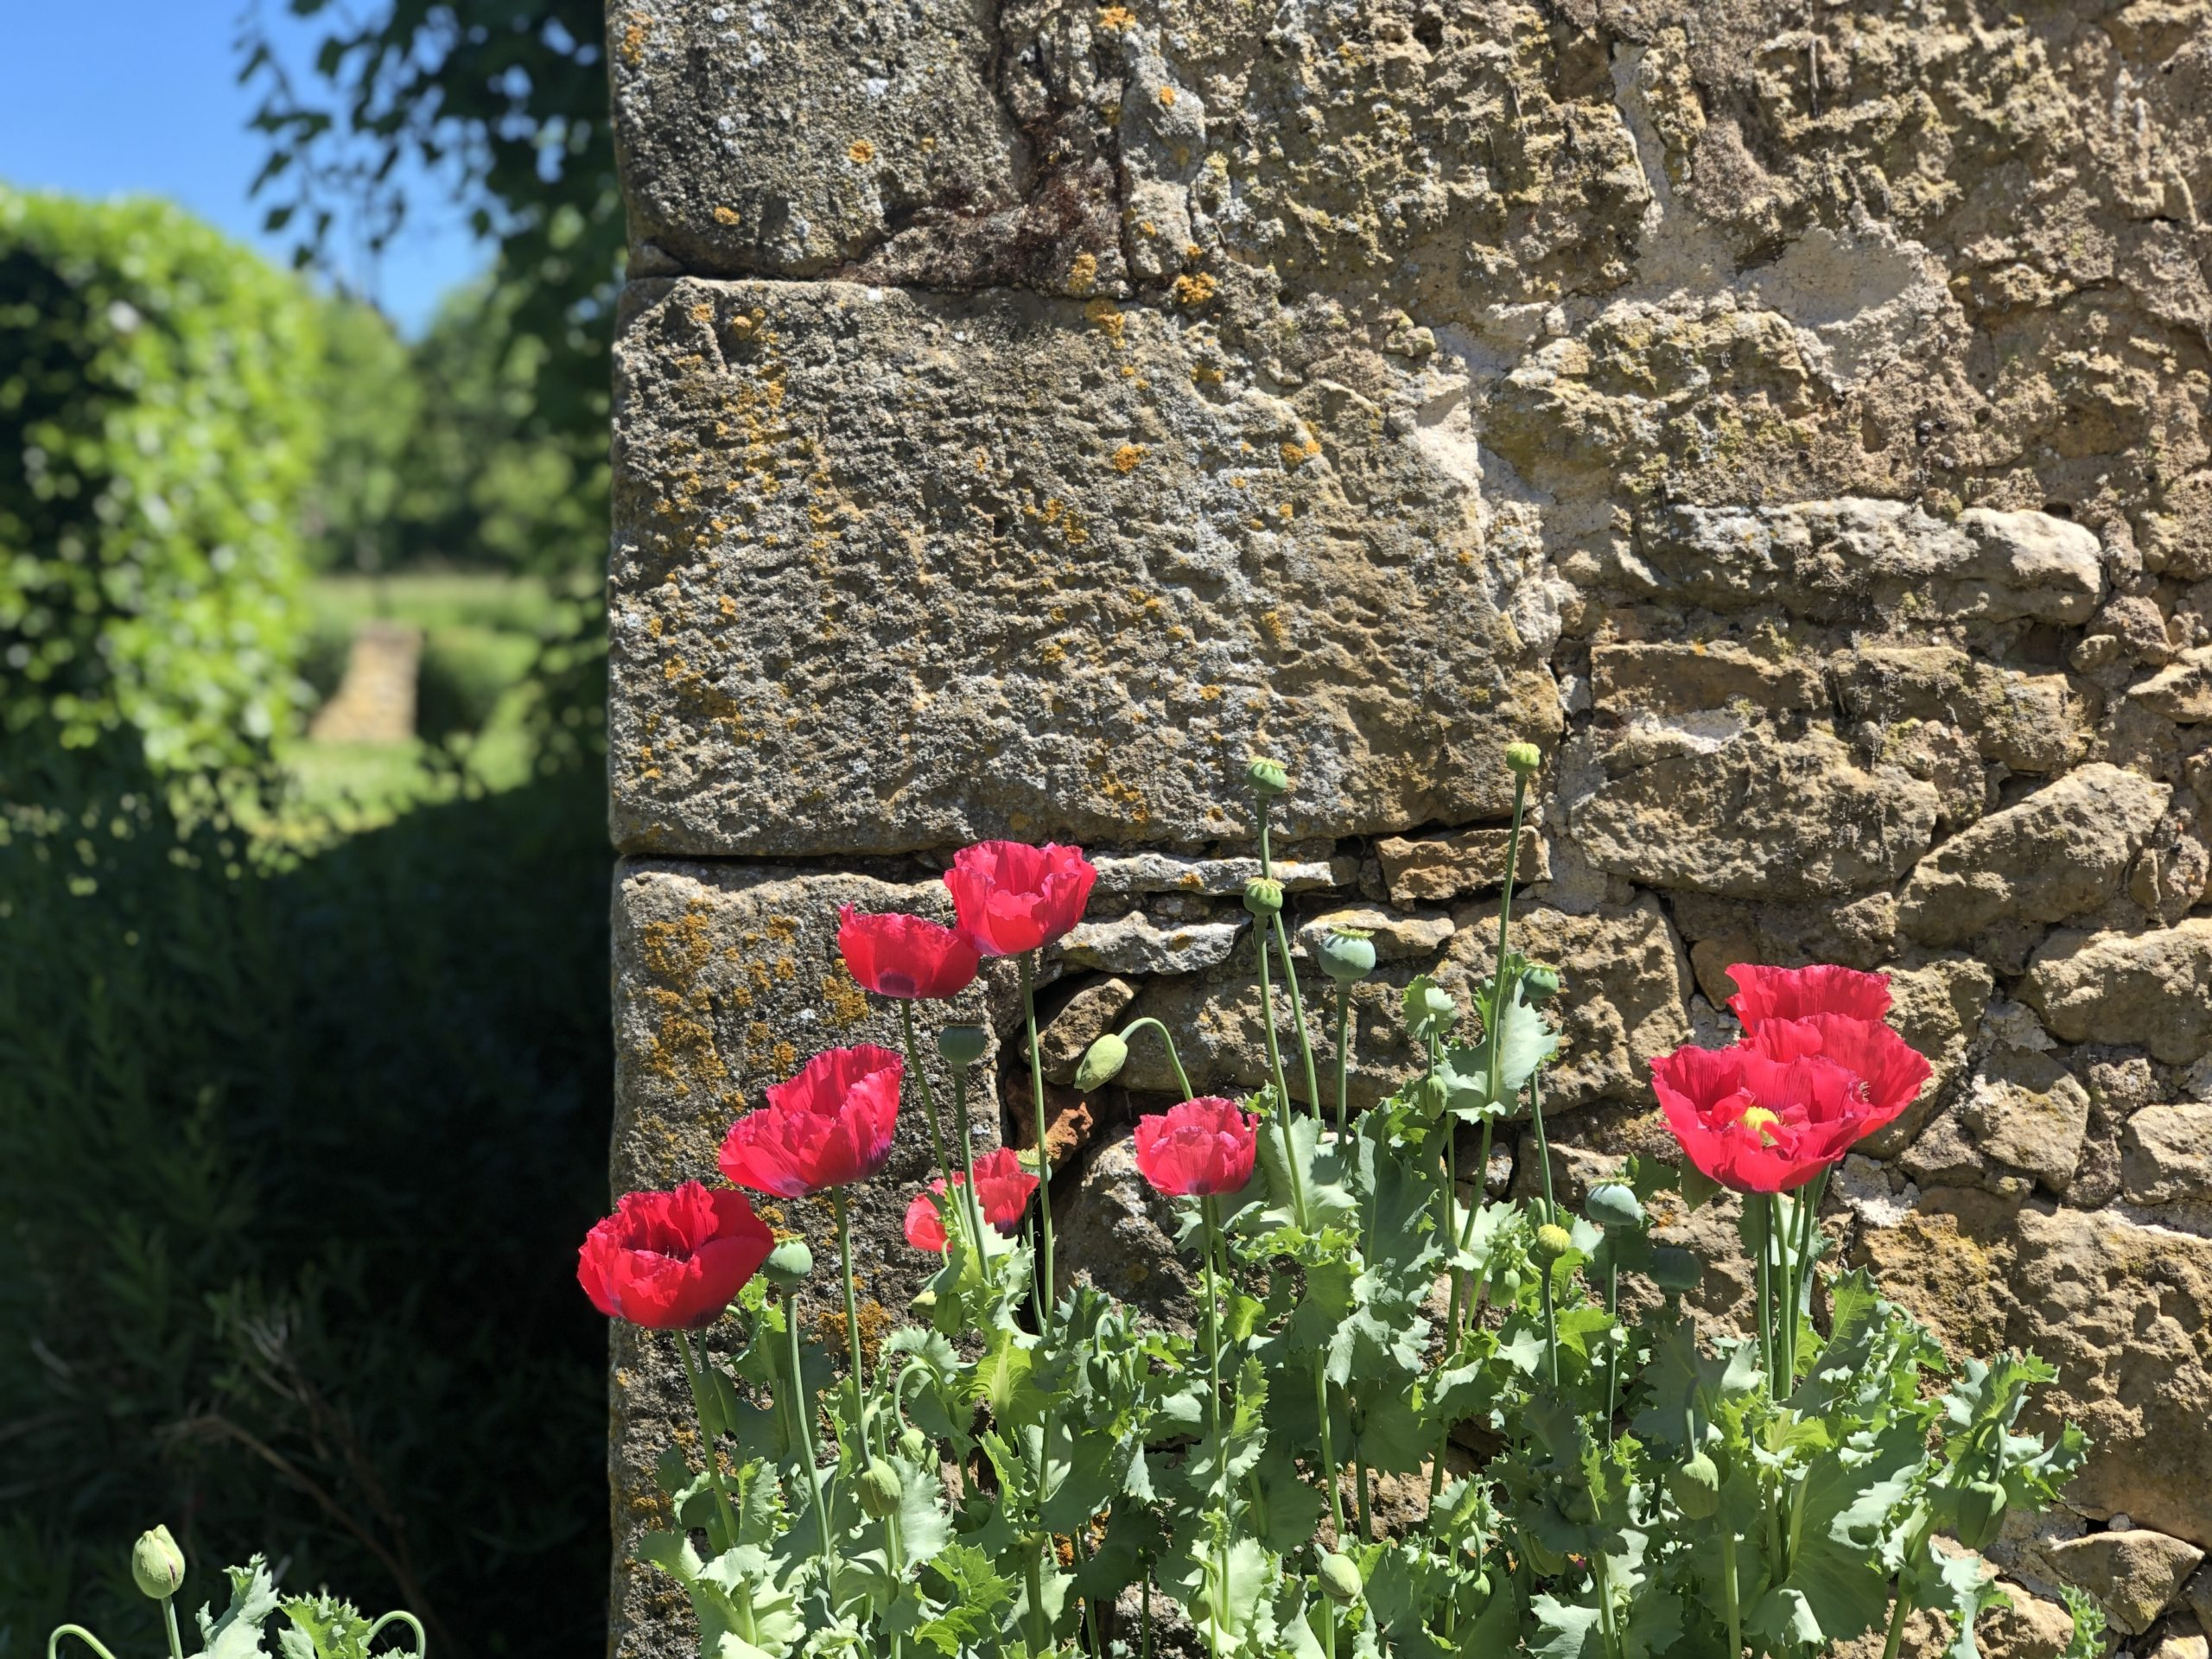 Wild poppies in front of stone wall in the beautiful garden of Le Mas in the Dordogne